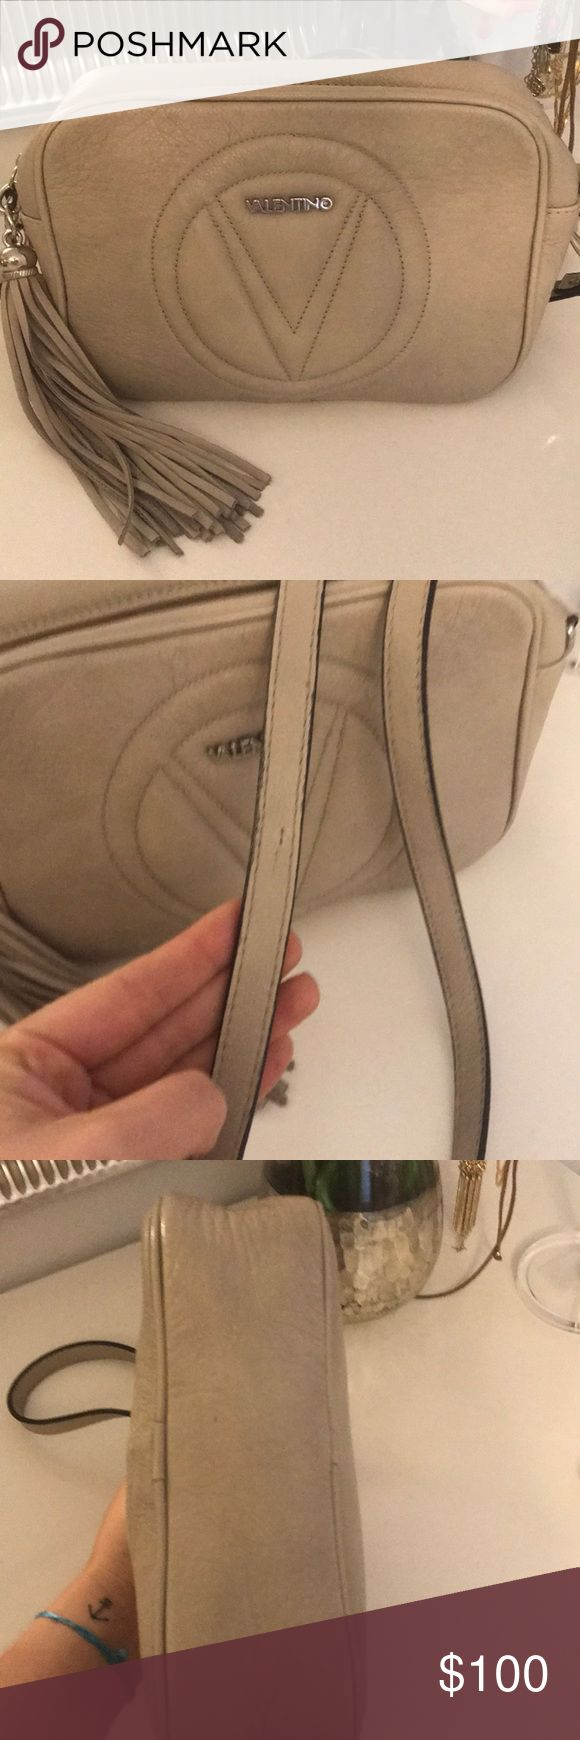 Valentino by Mario Valentino Crossbody bag Bag is in good shape but does have signs of wear pictured. Mario Valentino Bags Crossbody Bags